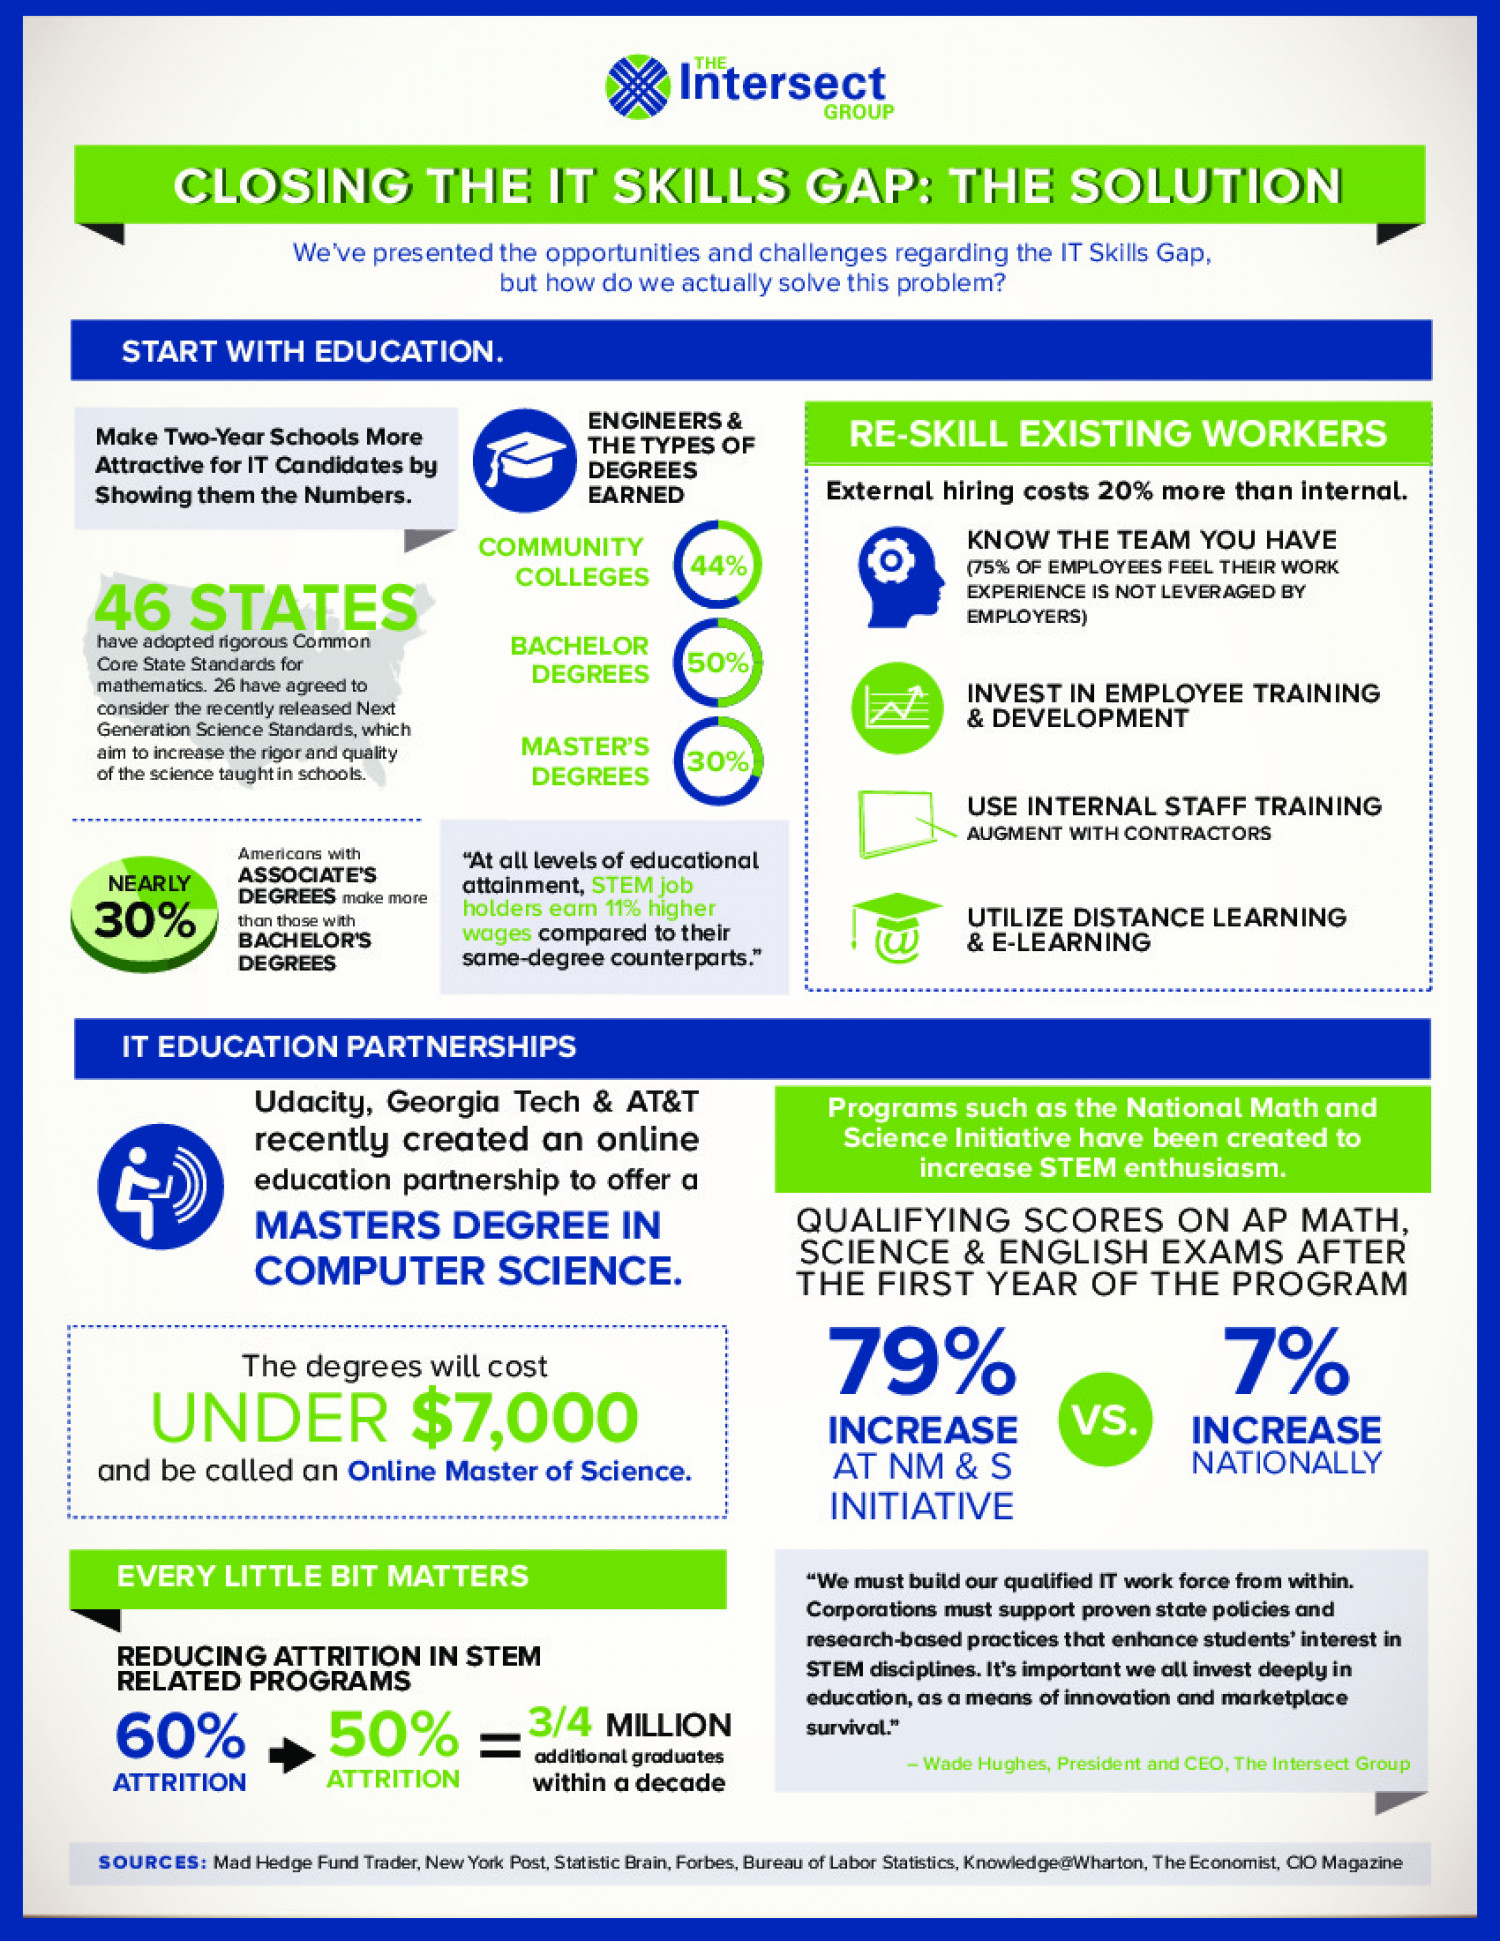 Closing the IT Skills Gap: The Solution Infographic